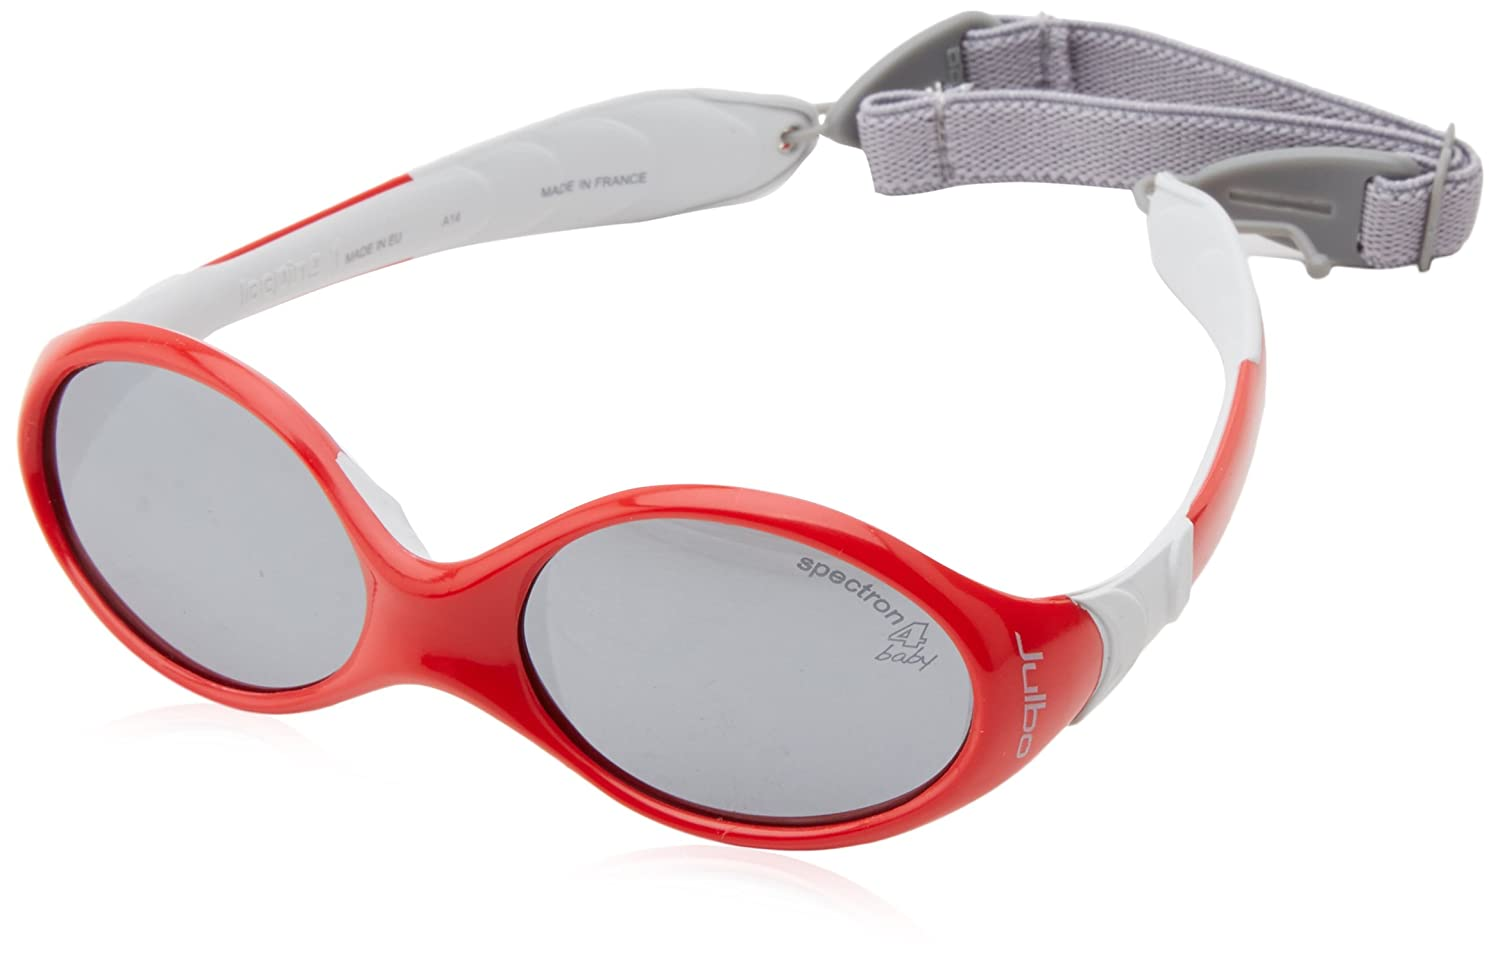 Julbo Looping I Baby Sunglasses Julbo Looping 1 Sunglasses Blue/Gray 0-18 months J189112C